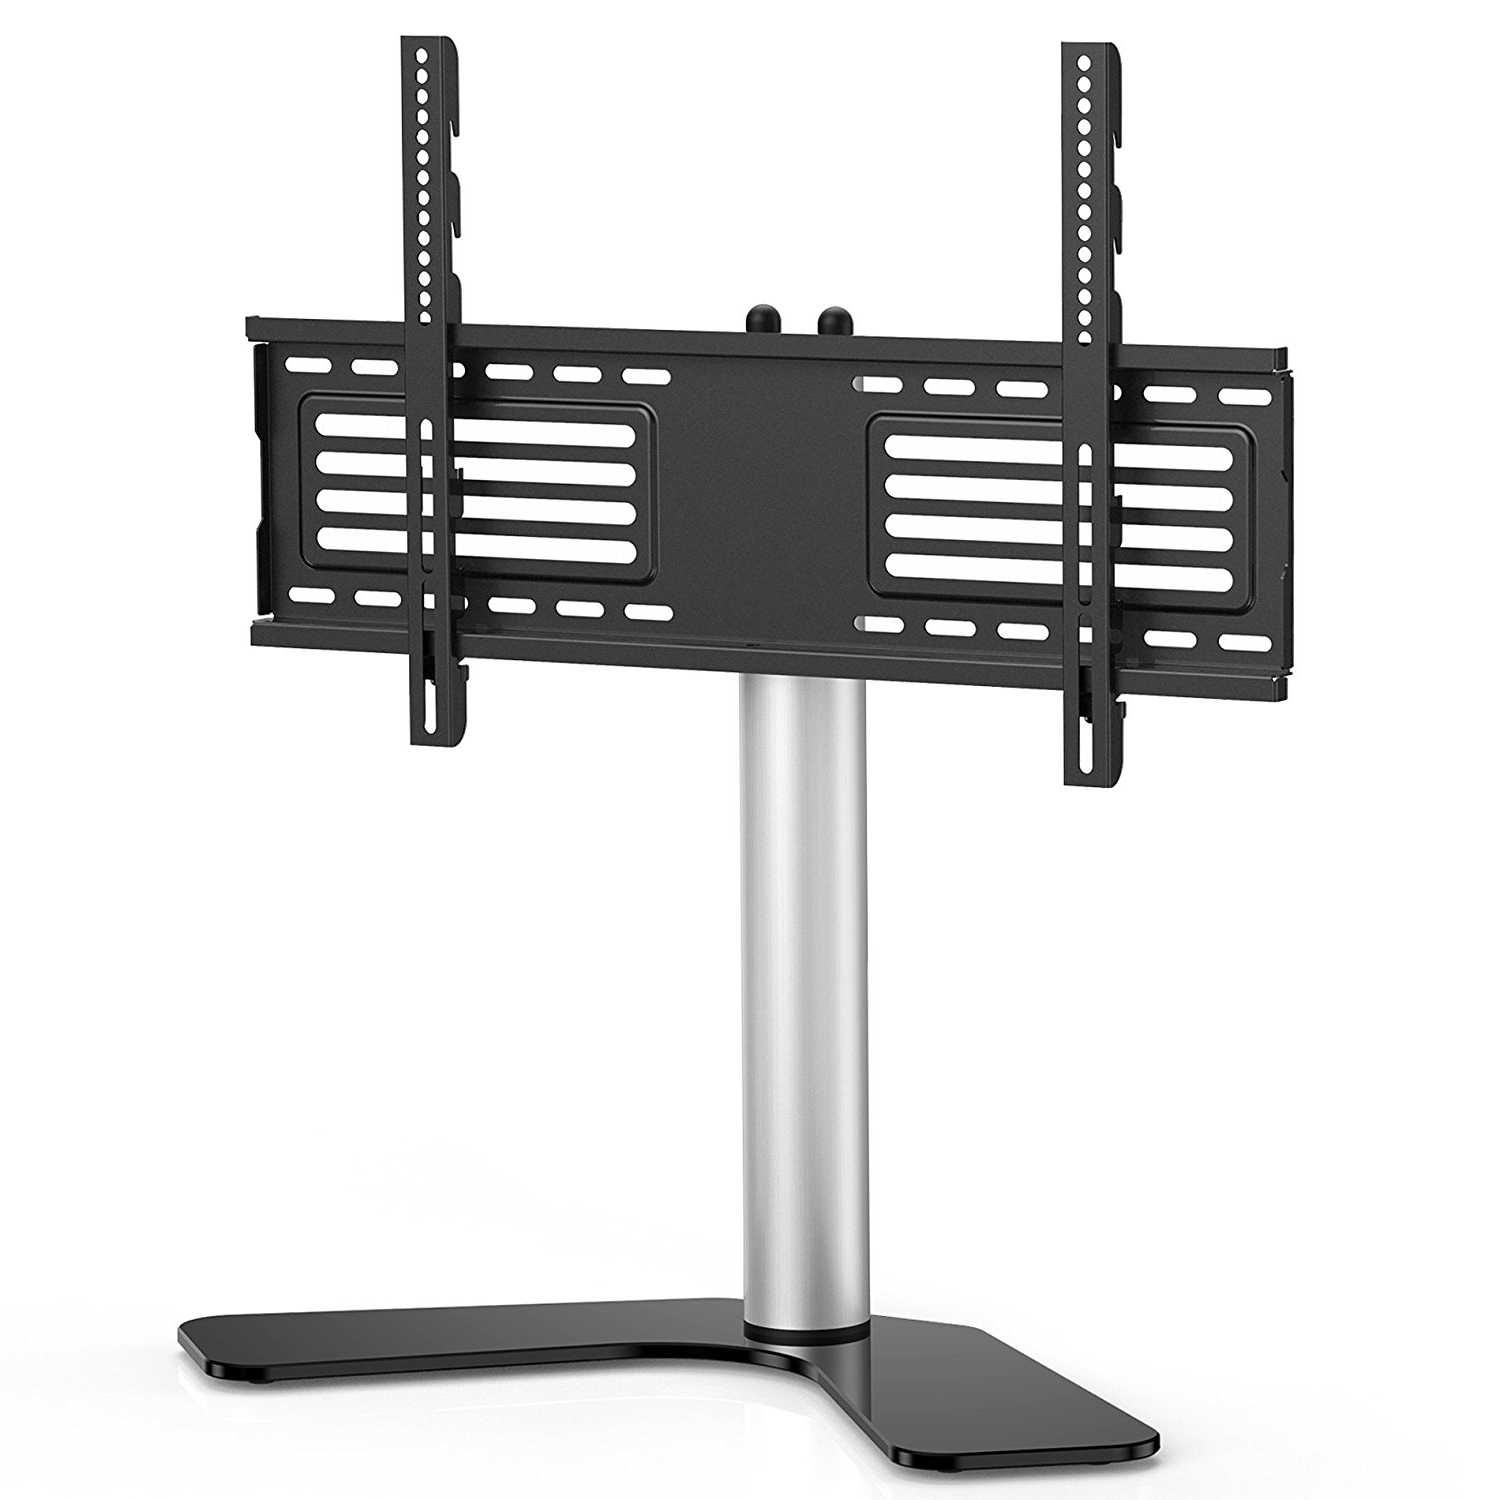 Most Recent Fitueyes Universal Swivel Tabletop Tv Stand With Mount For 32 To 65 Pertaining To Tabletop Tv Stands (Gallery 6 of 20)